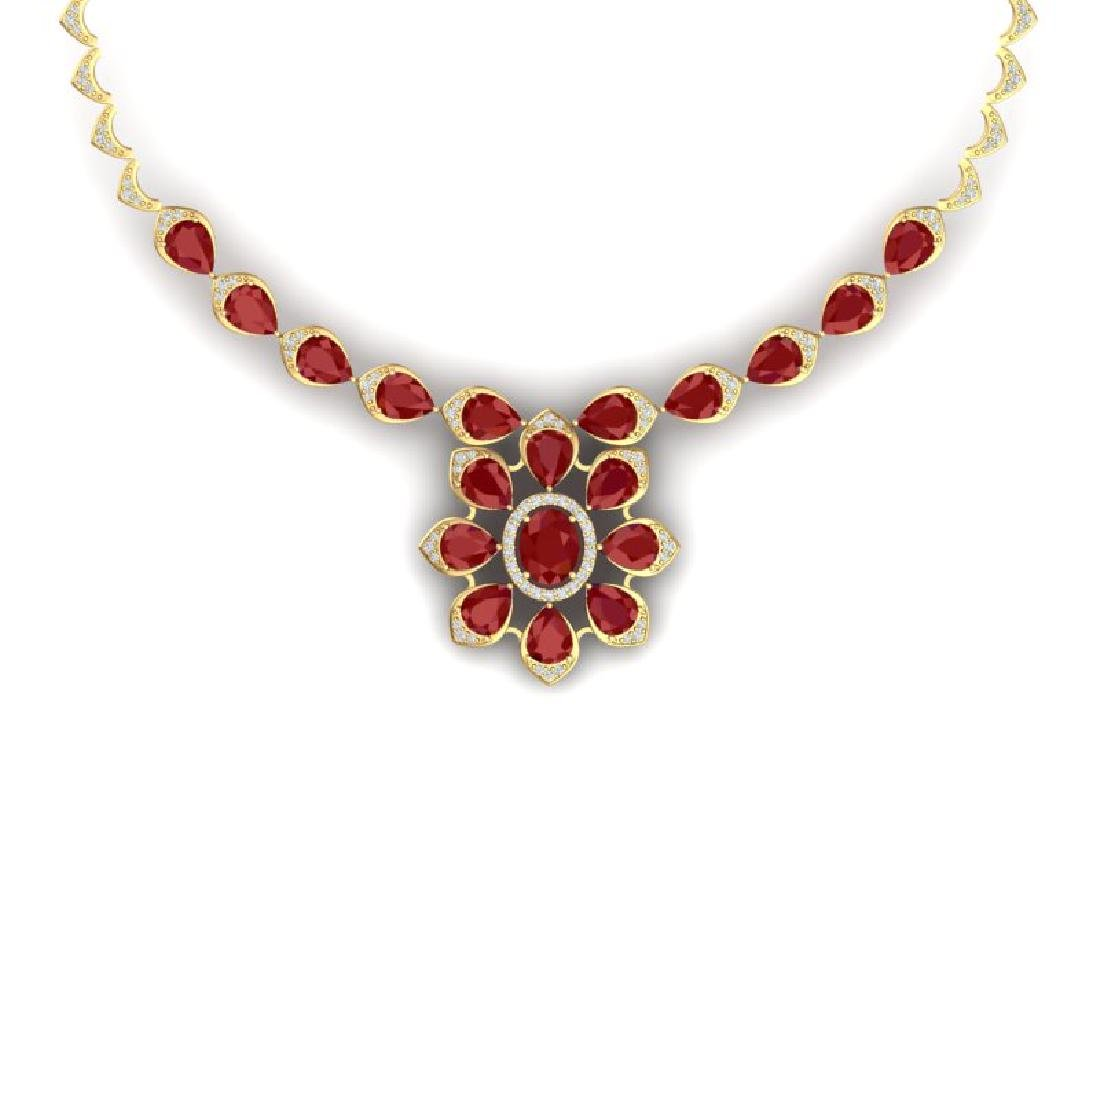 30.70 CTW Royalty Ruby & VS Diamond Necklace 18K Yellow